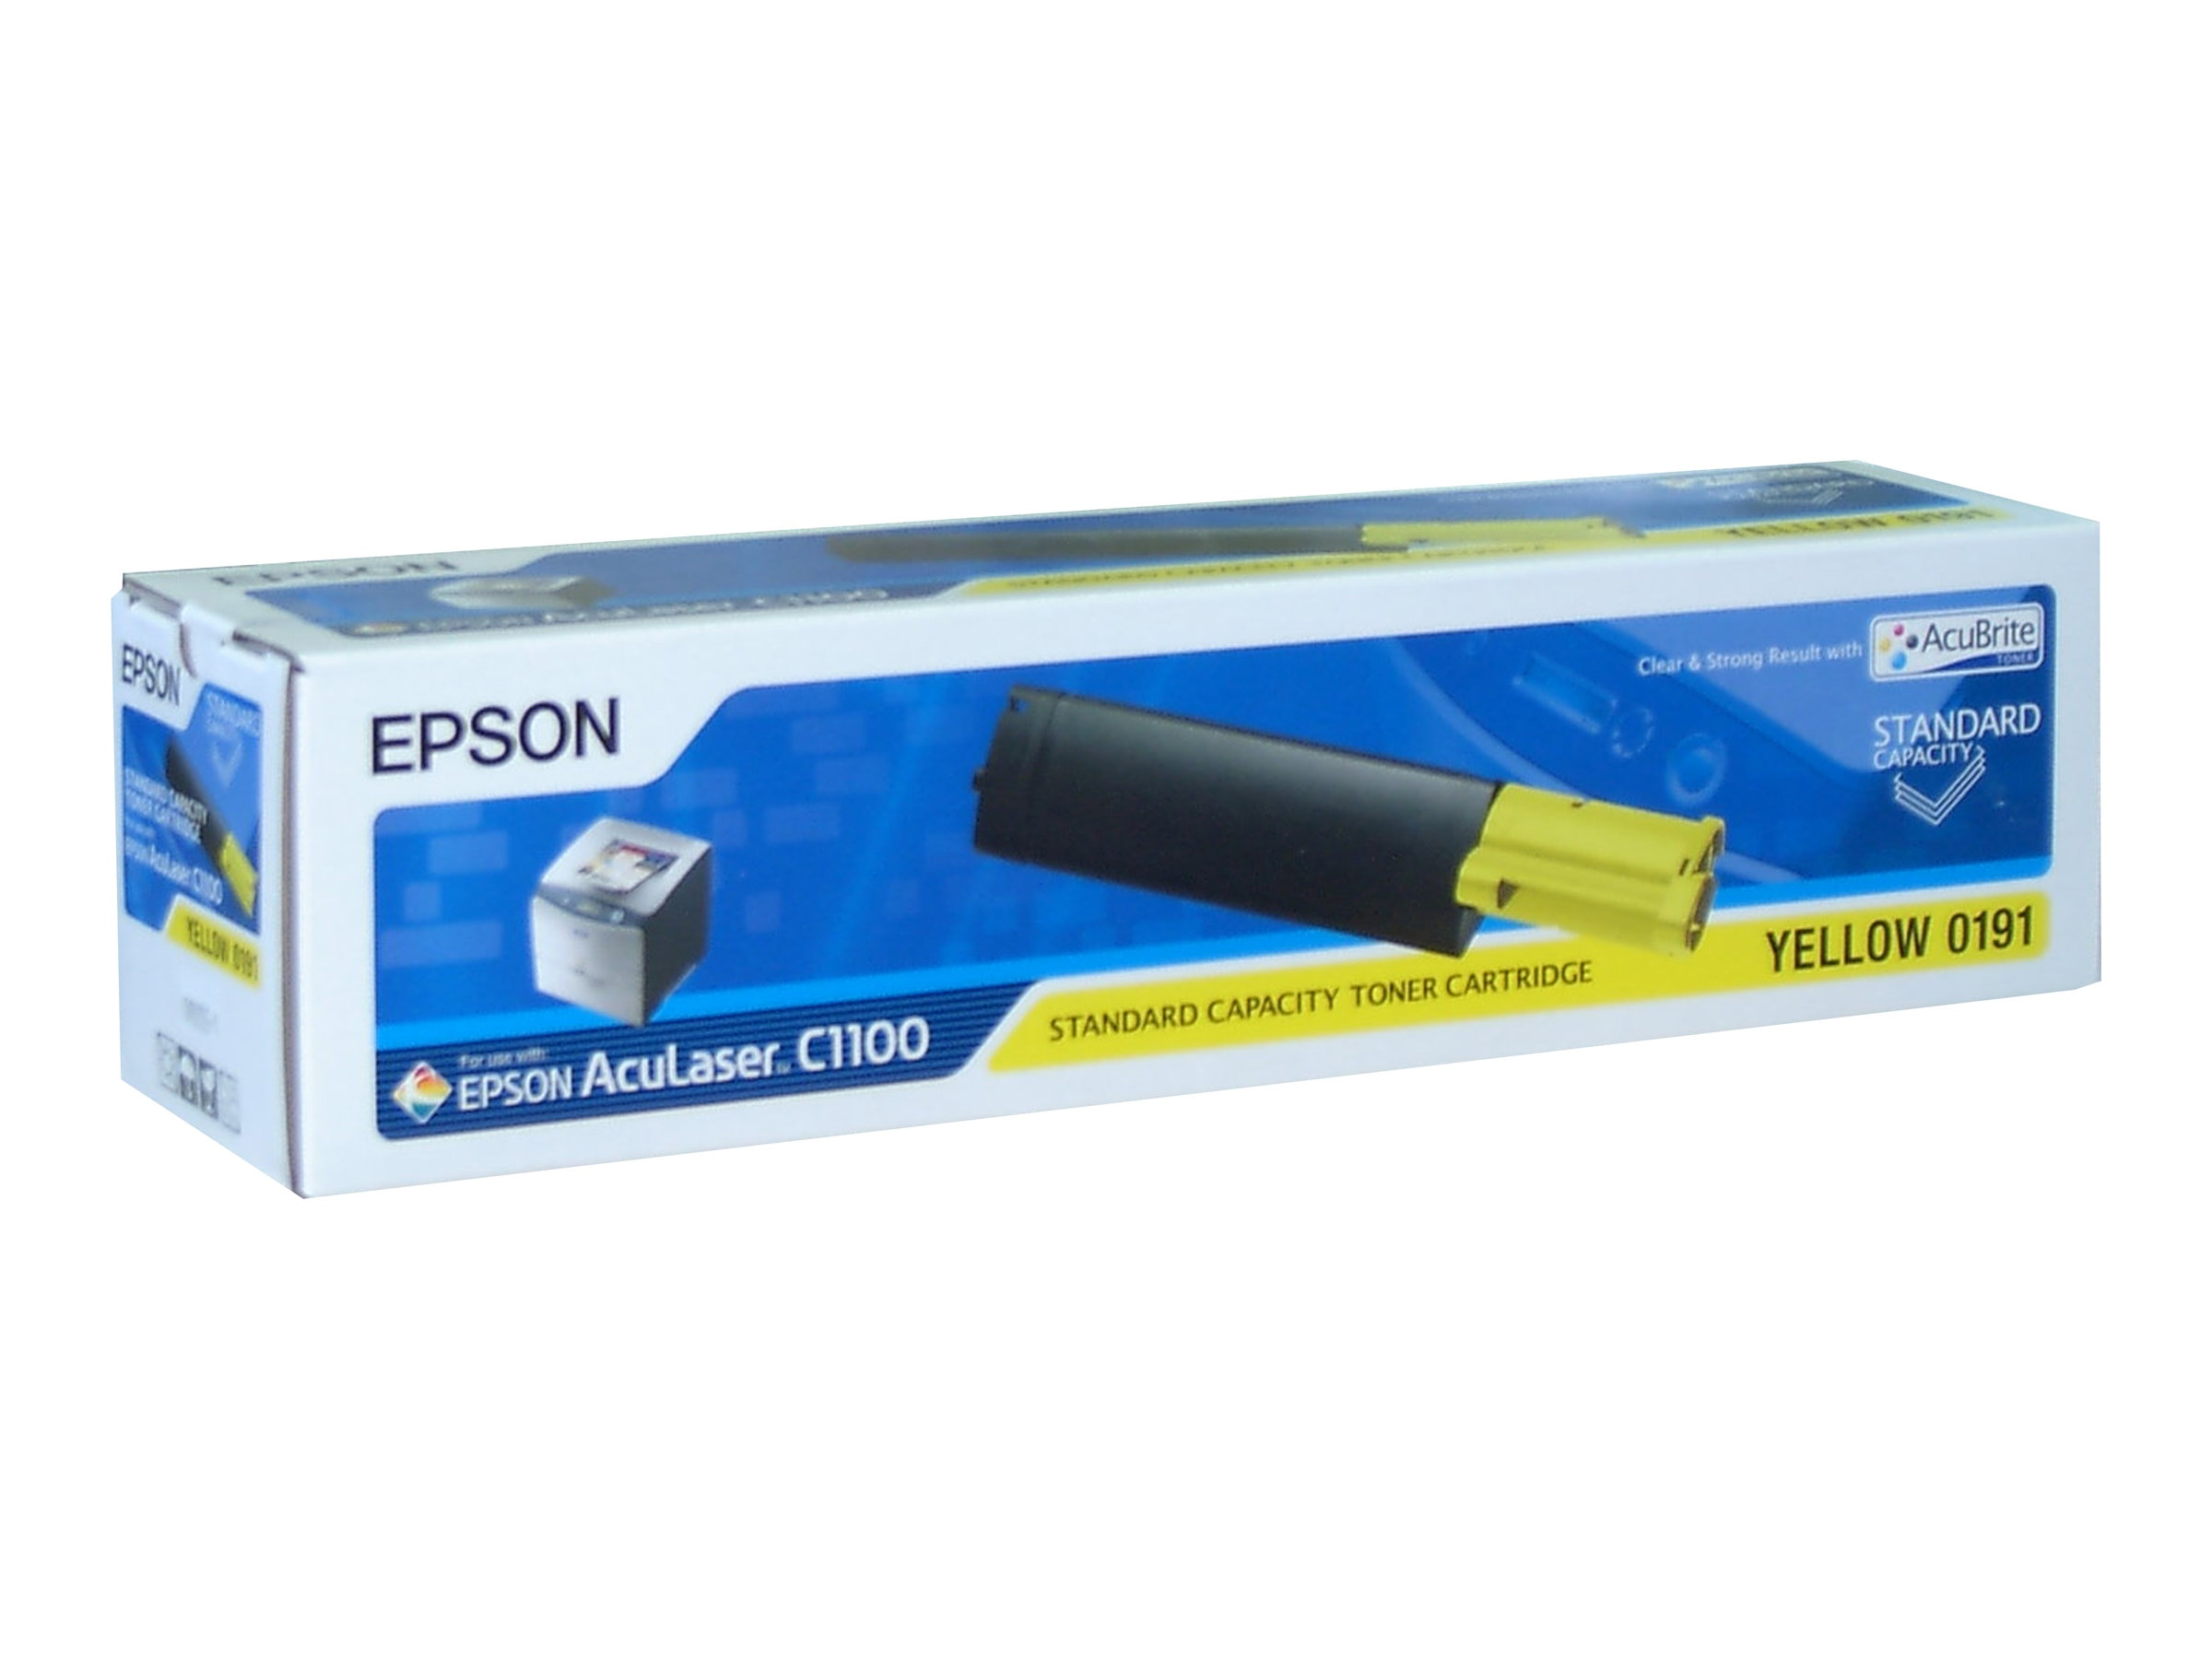 Epson Yellow Standard Capacity Toner Cartridge for Select AcuLaser Printers, S050191